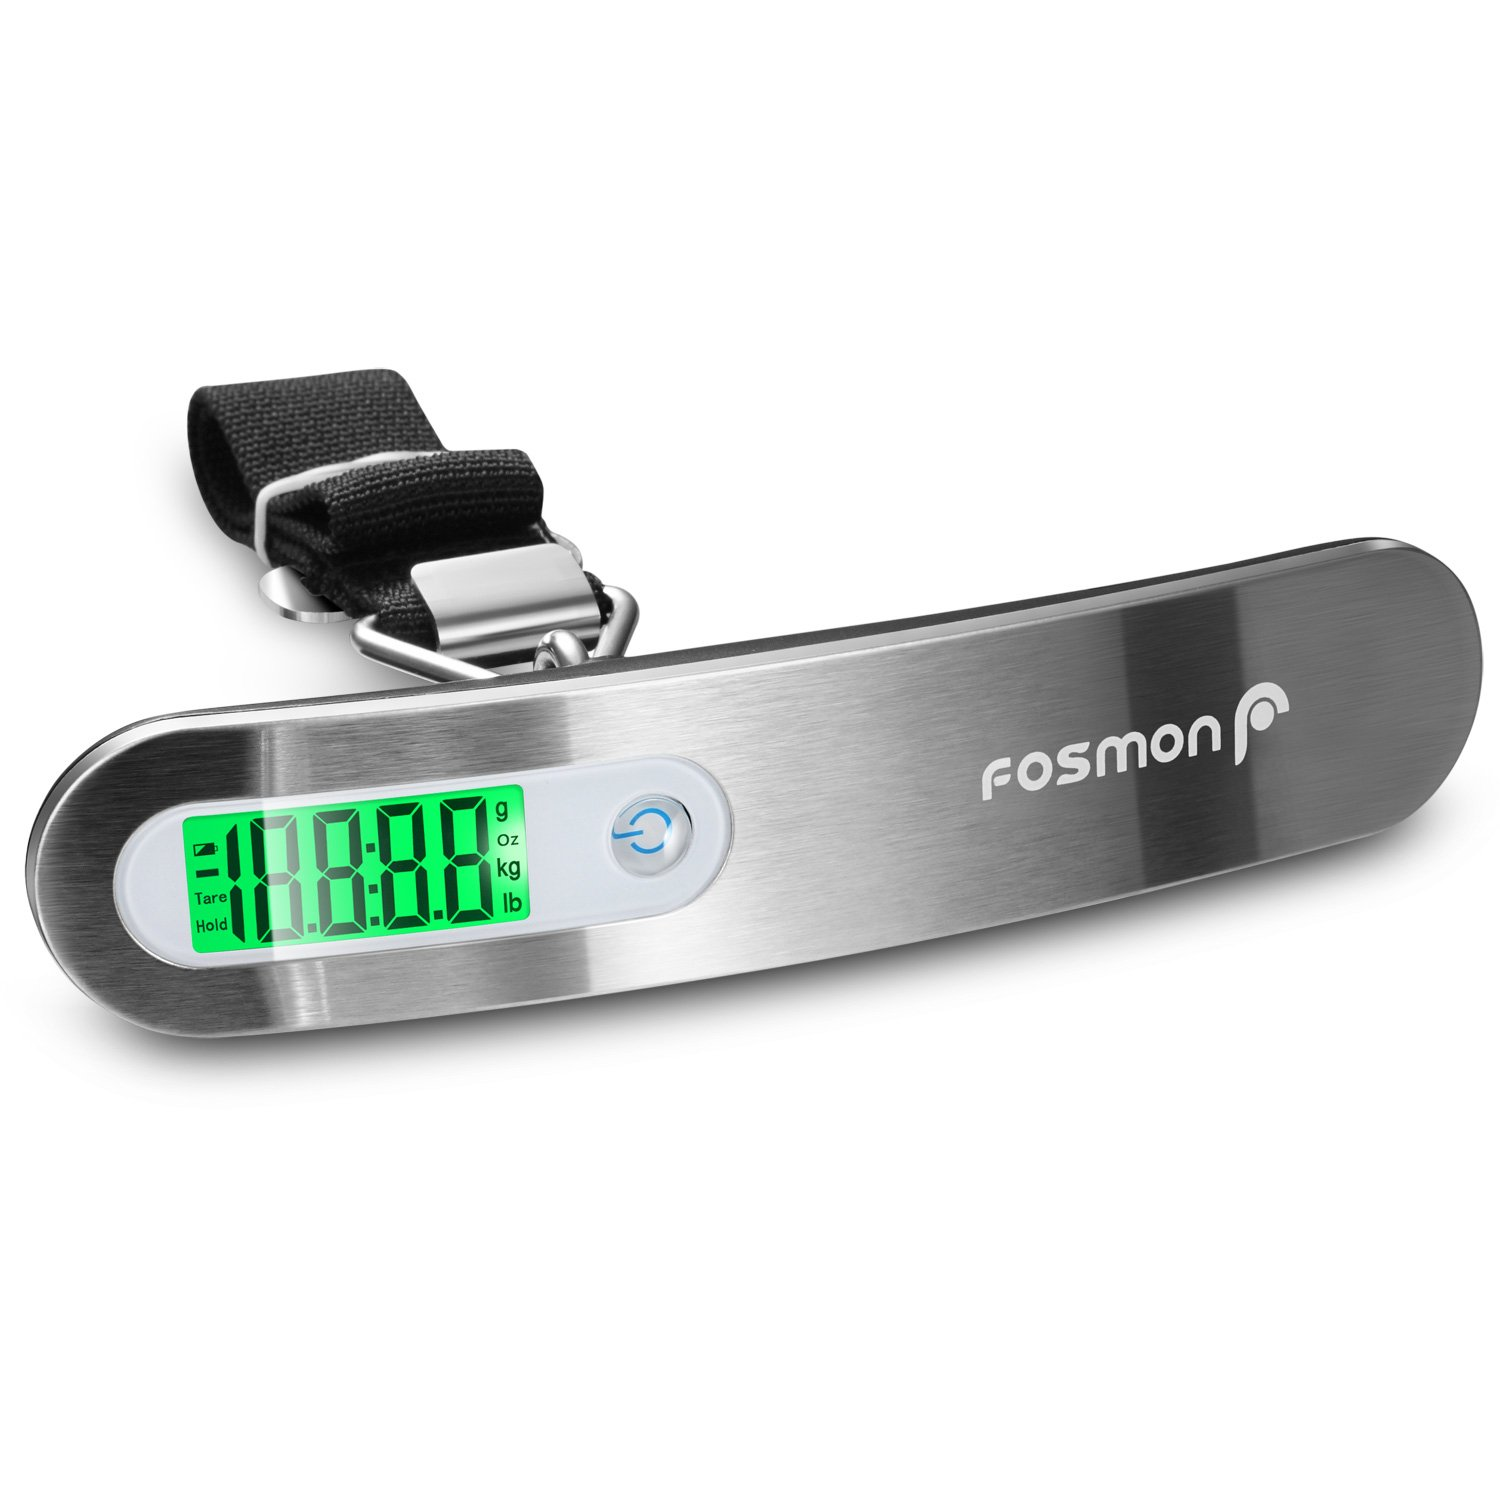 Digital Luggage Scale (2 Pack), Fosmon [Stainless Steel │Backlight │ LCD Display] Digital Hanging Luggage Weight Scale, Up to 110LB (50 kg) with Tare Function - Silver 51024HOM